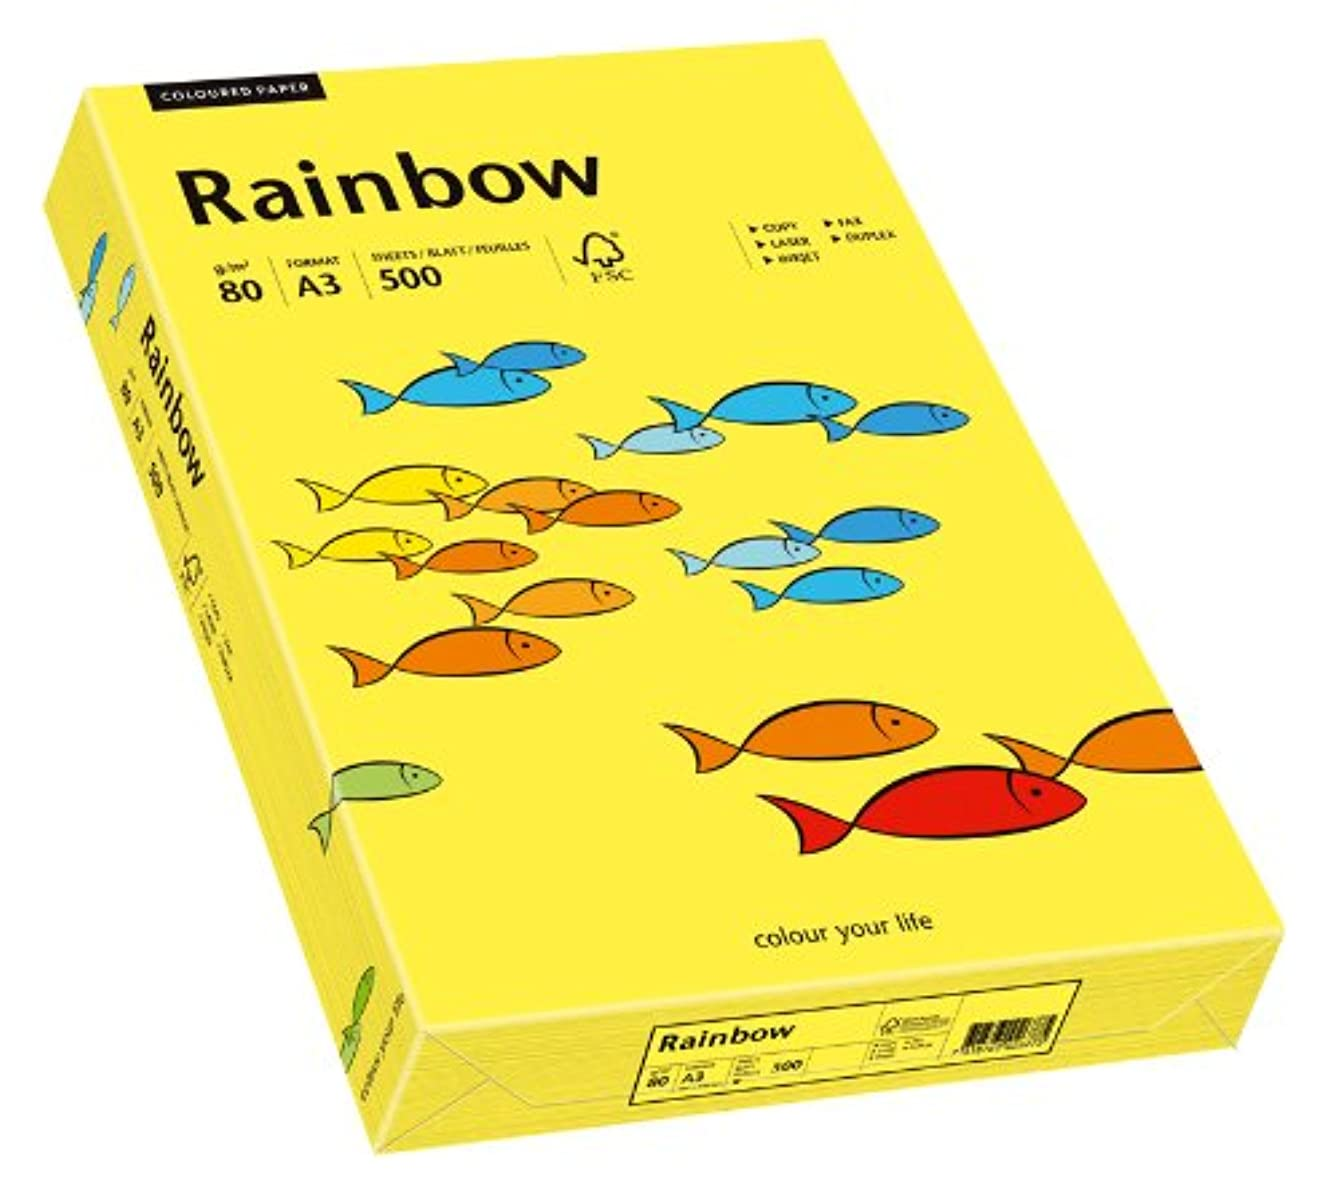 Papyrus Rainbow 88042322 Multi-Purpose Paper A3 80 g/m2 500 Sheets Mid Yellow